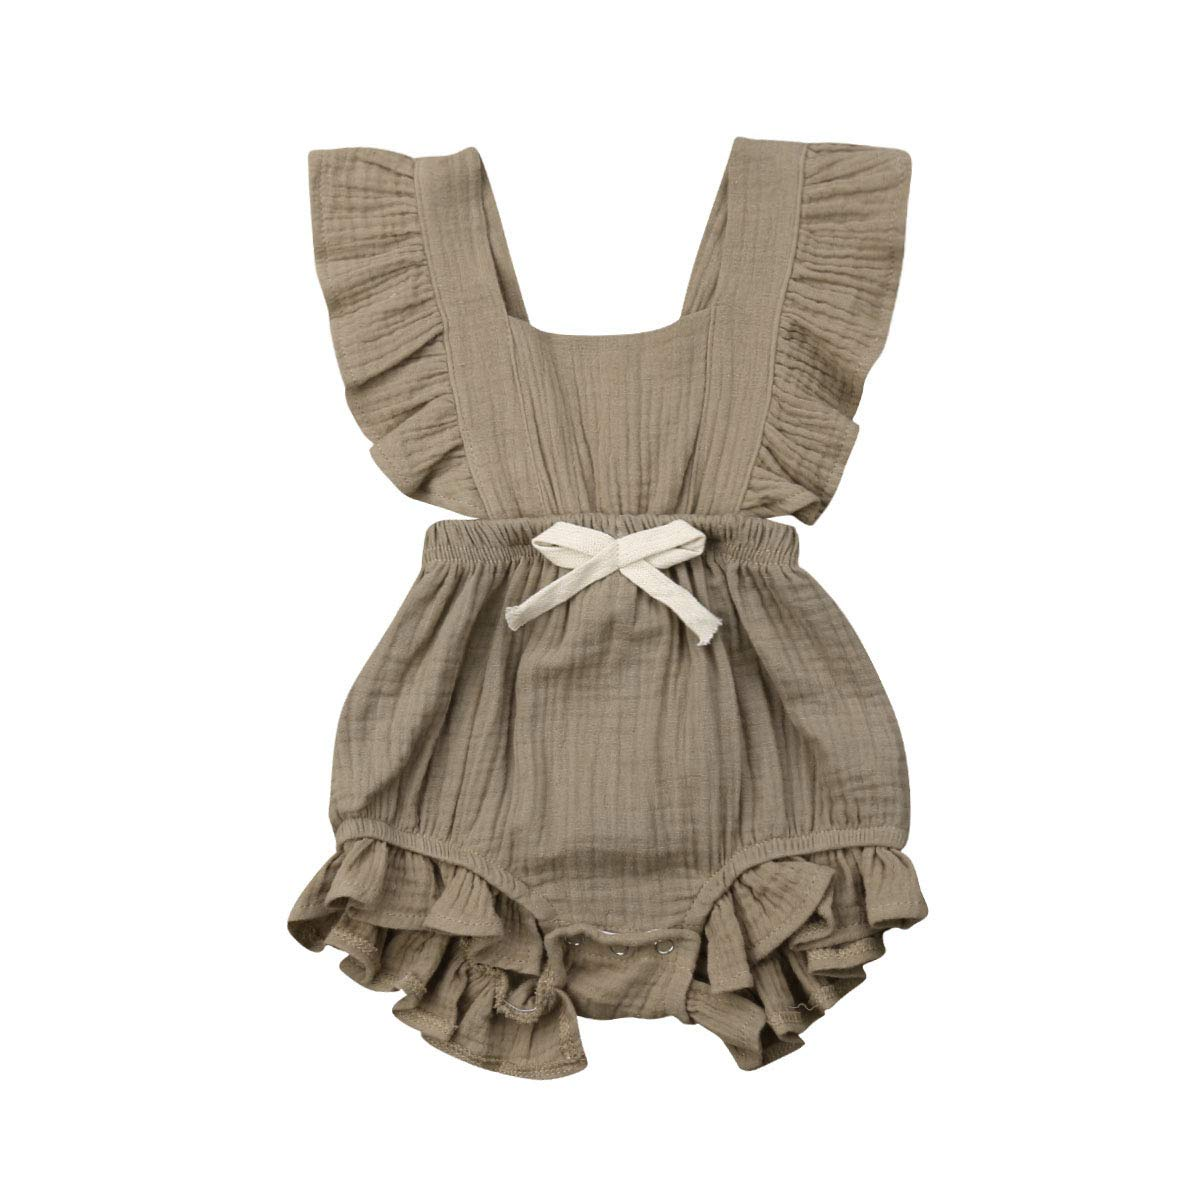 c3ea8a534f69 Amazon.com  ITFABS Newborn Baby Girl Romper Bodysuits Cotton Flutter Sleeve  One-Piece Romper Outfits Clothes  Clothing